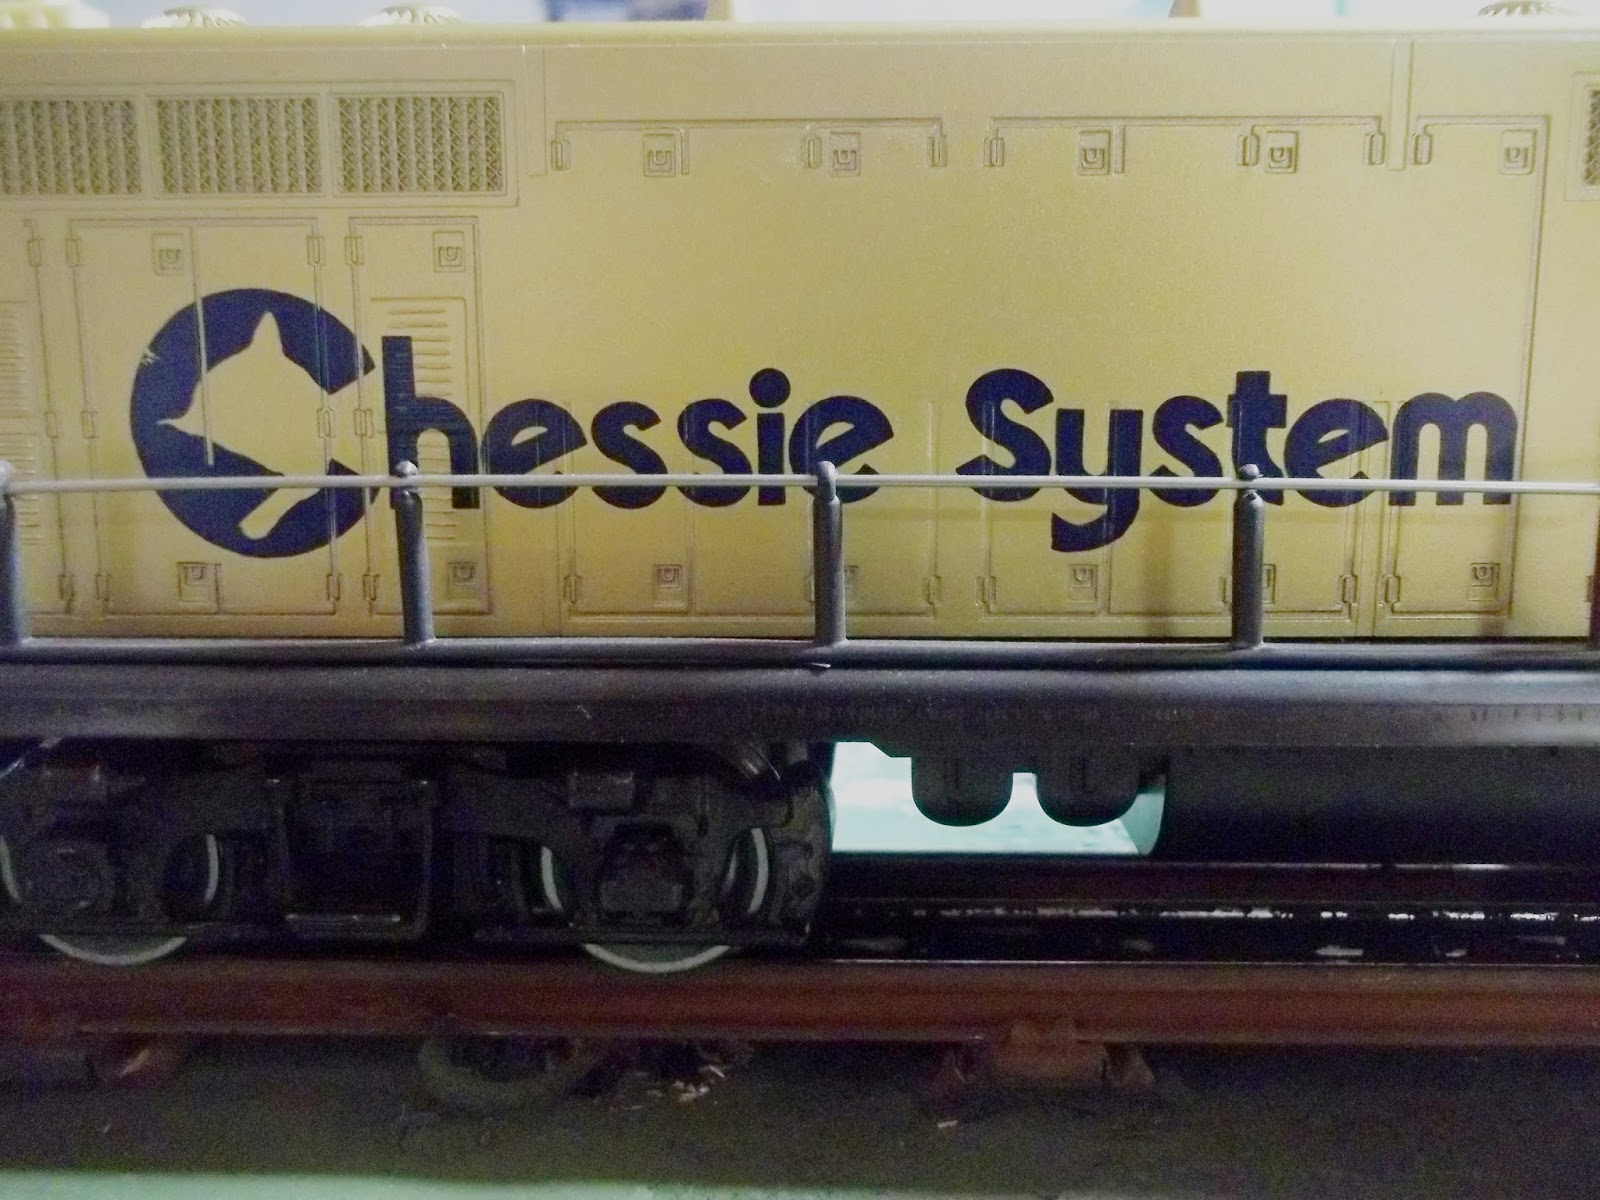 3 rail fun lionels model features a sharp rendition of the chessie system graphics asfbconference2016 Image collections